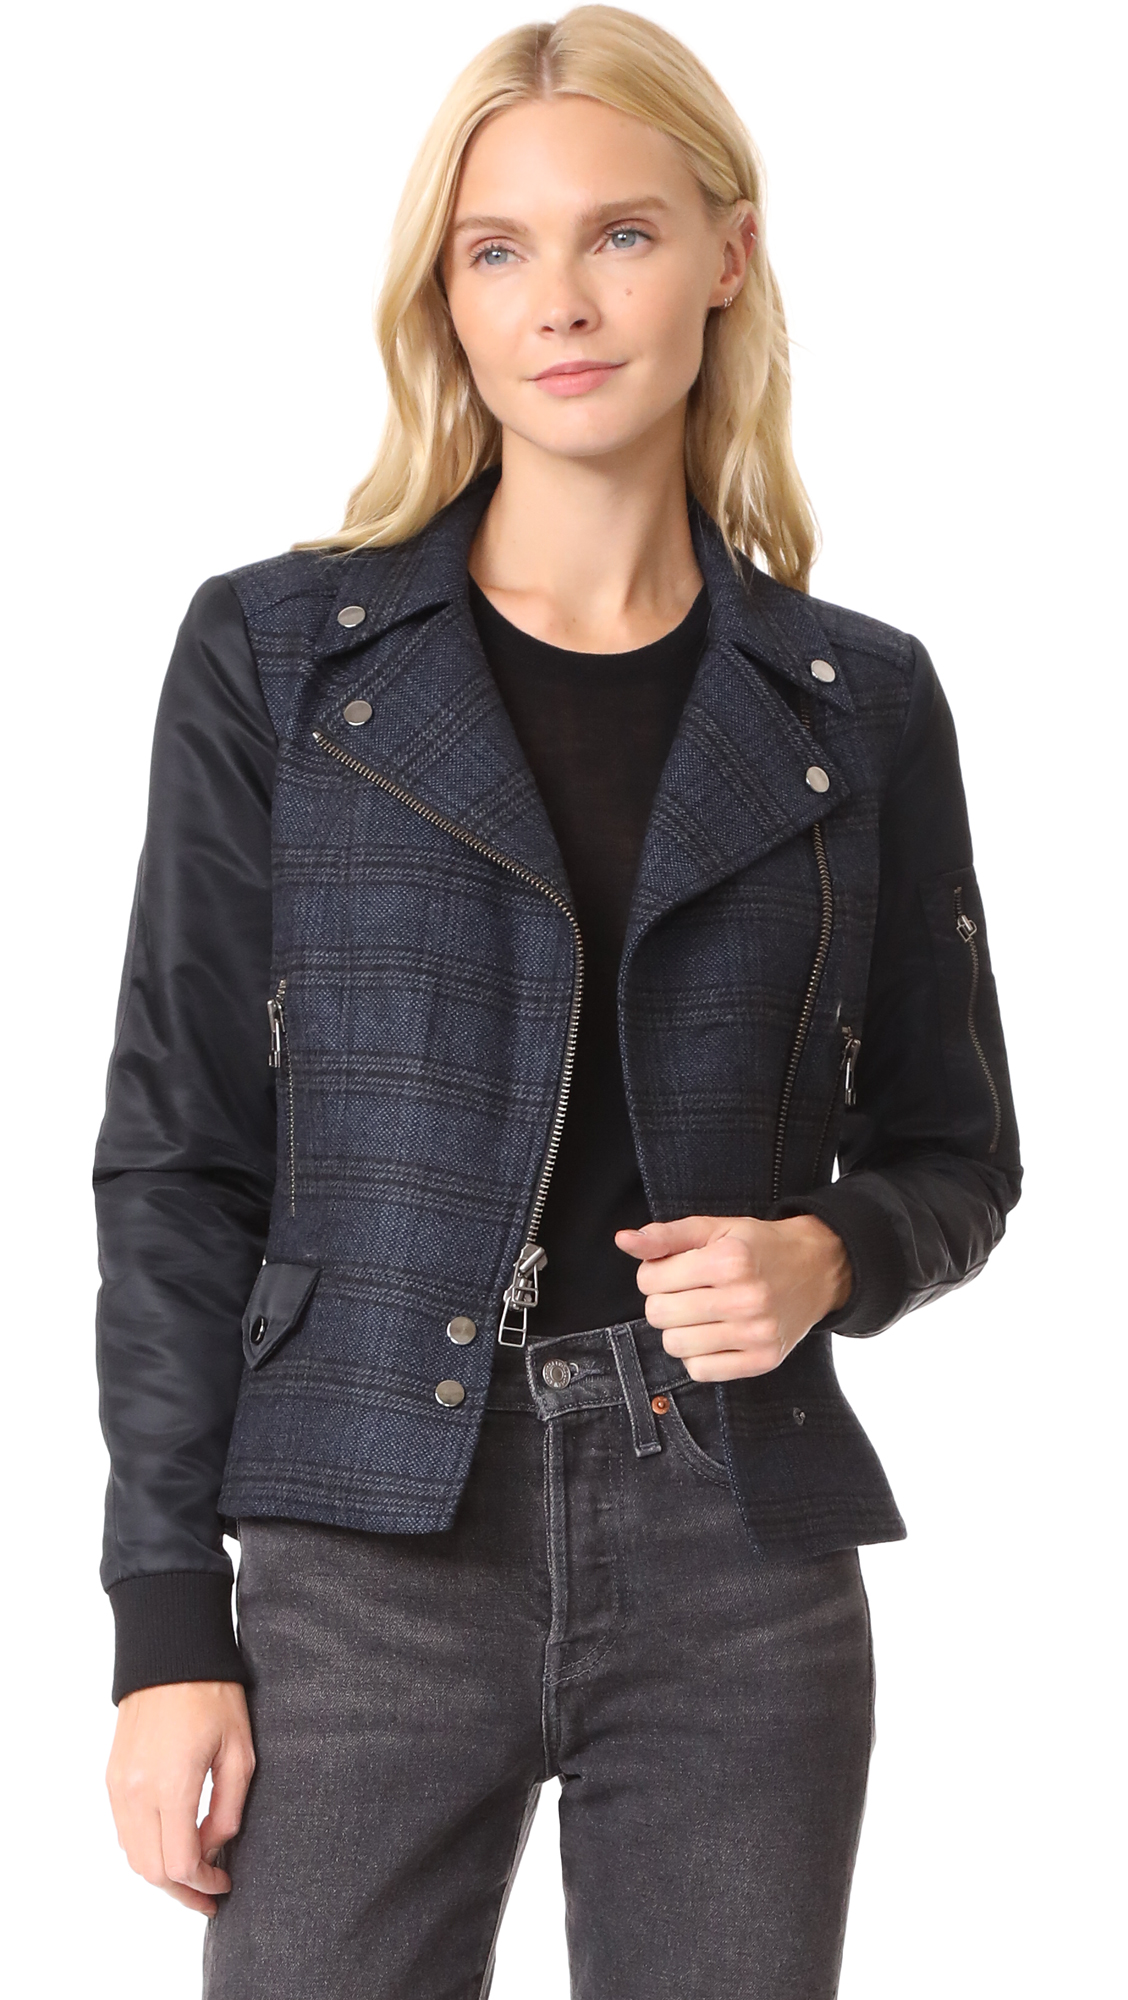 Veronica Beard Everly Combo Moto Jacket - Blue/Navy